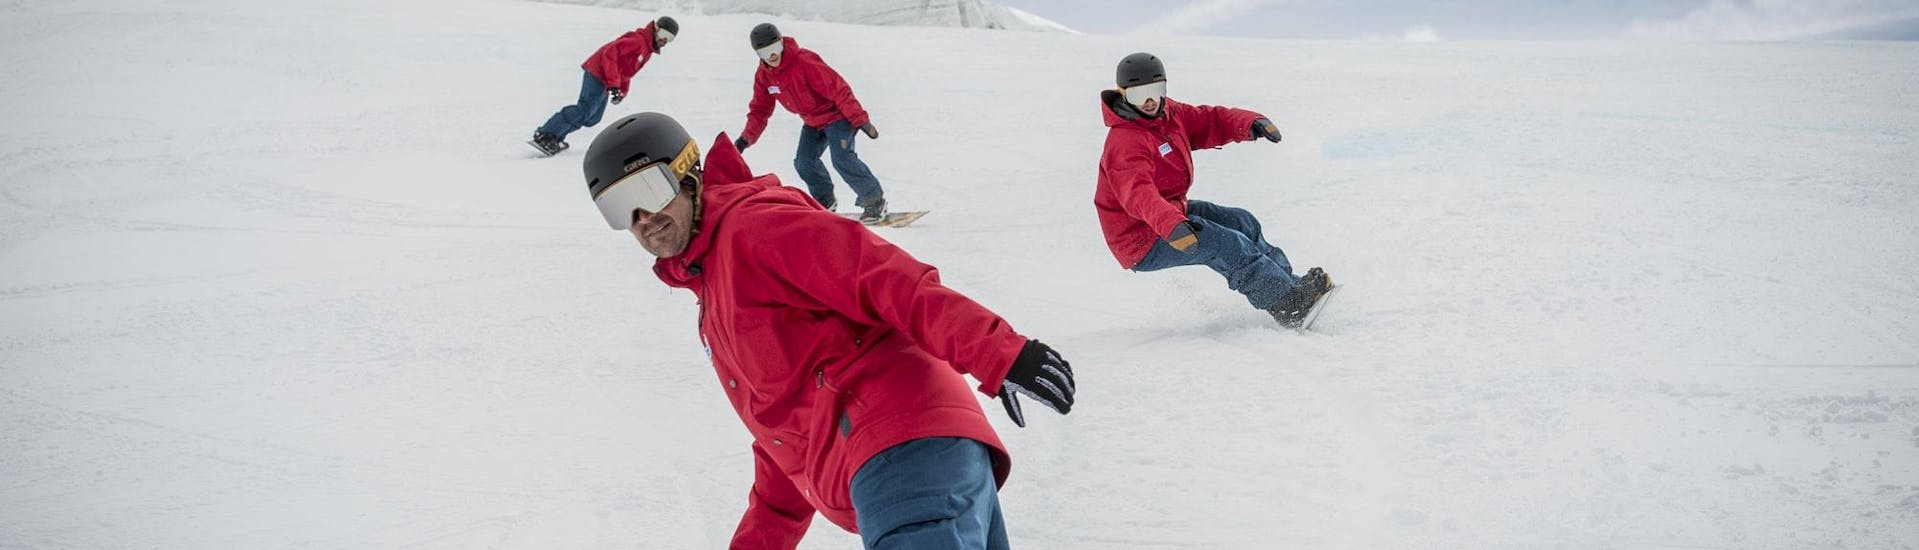 Adult Snowboarding Lessons for Advanced Boarders